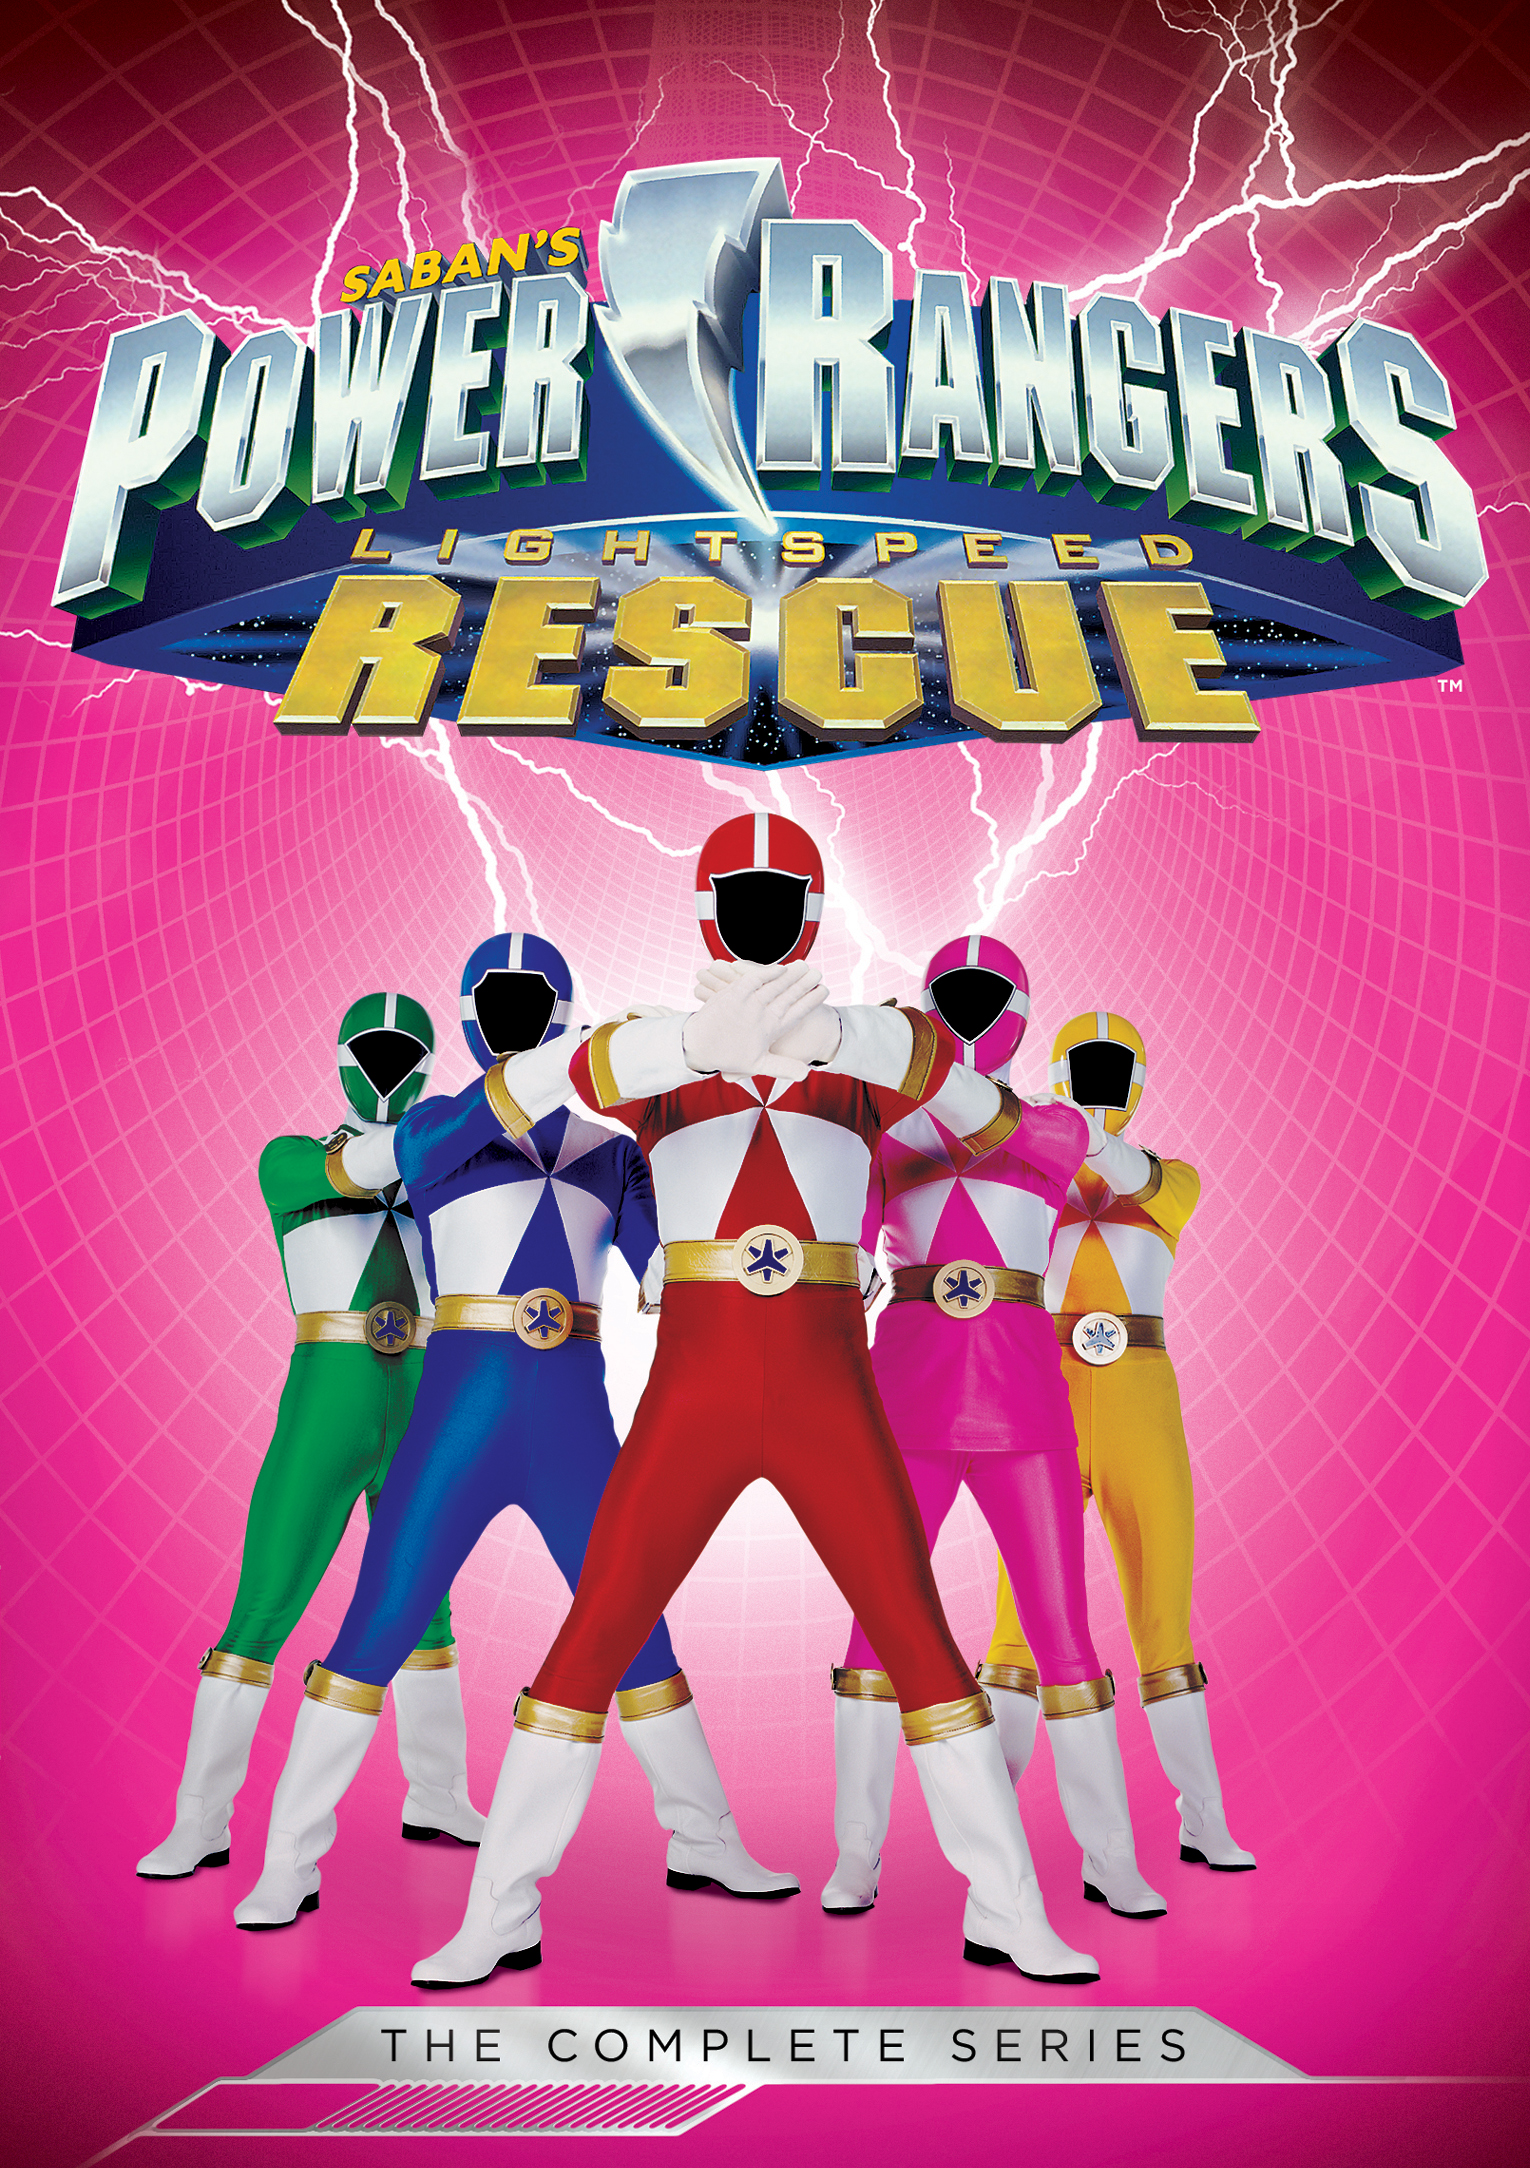 Power Rangers S.P.D. (TV Series 2005) - IMDb